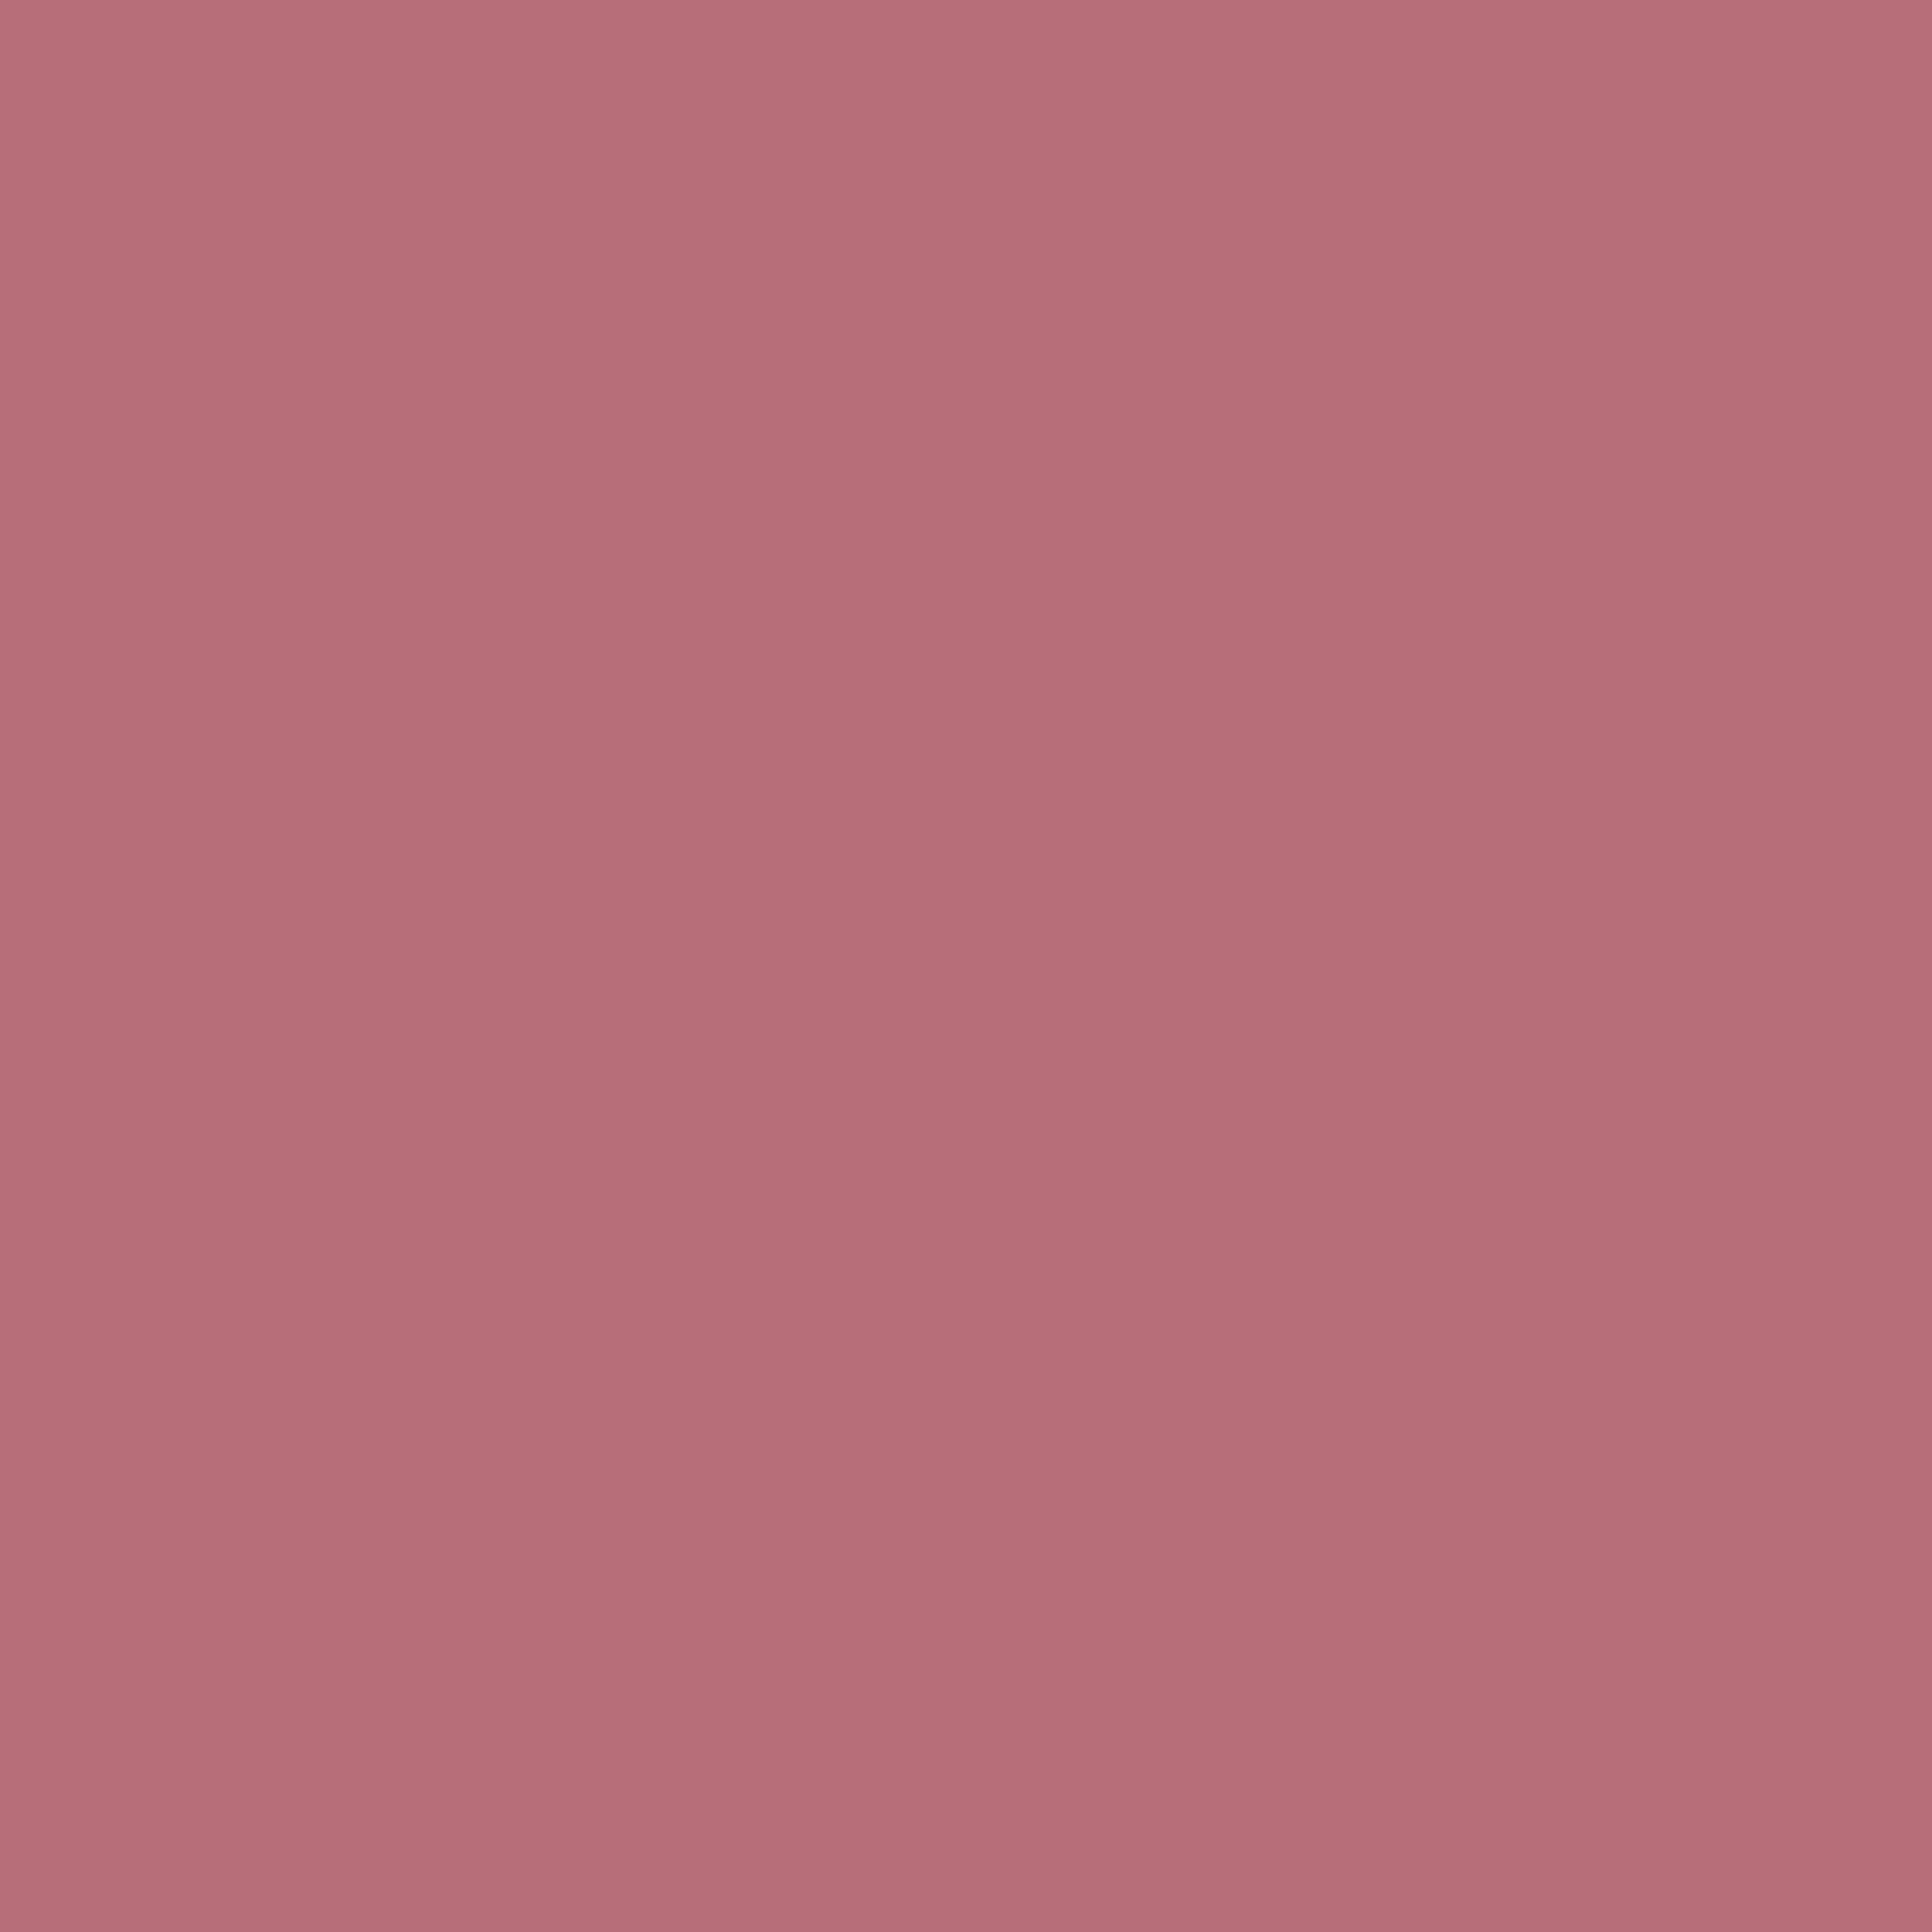 2048x2048 Rose Gold Solid Color Background